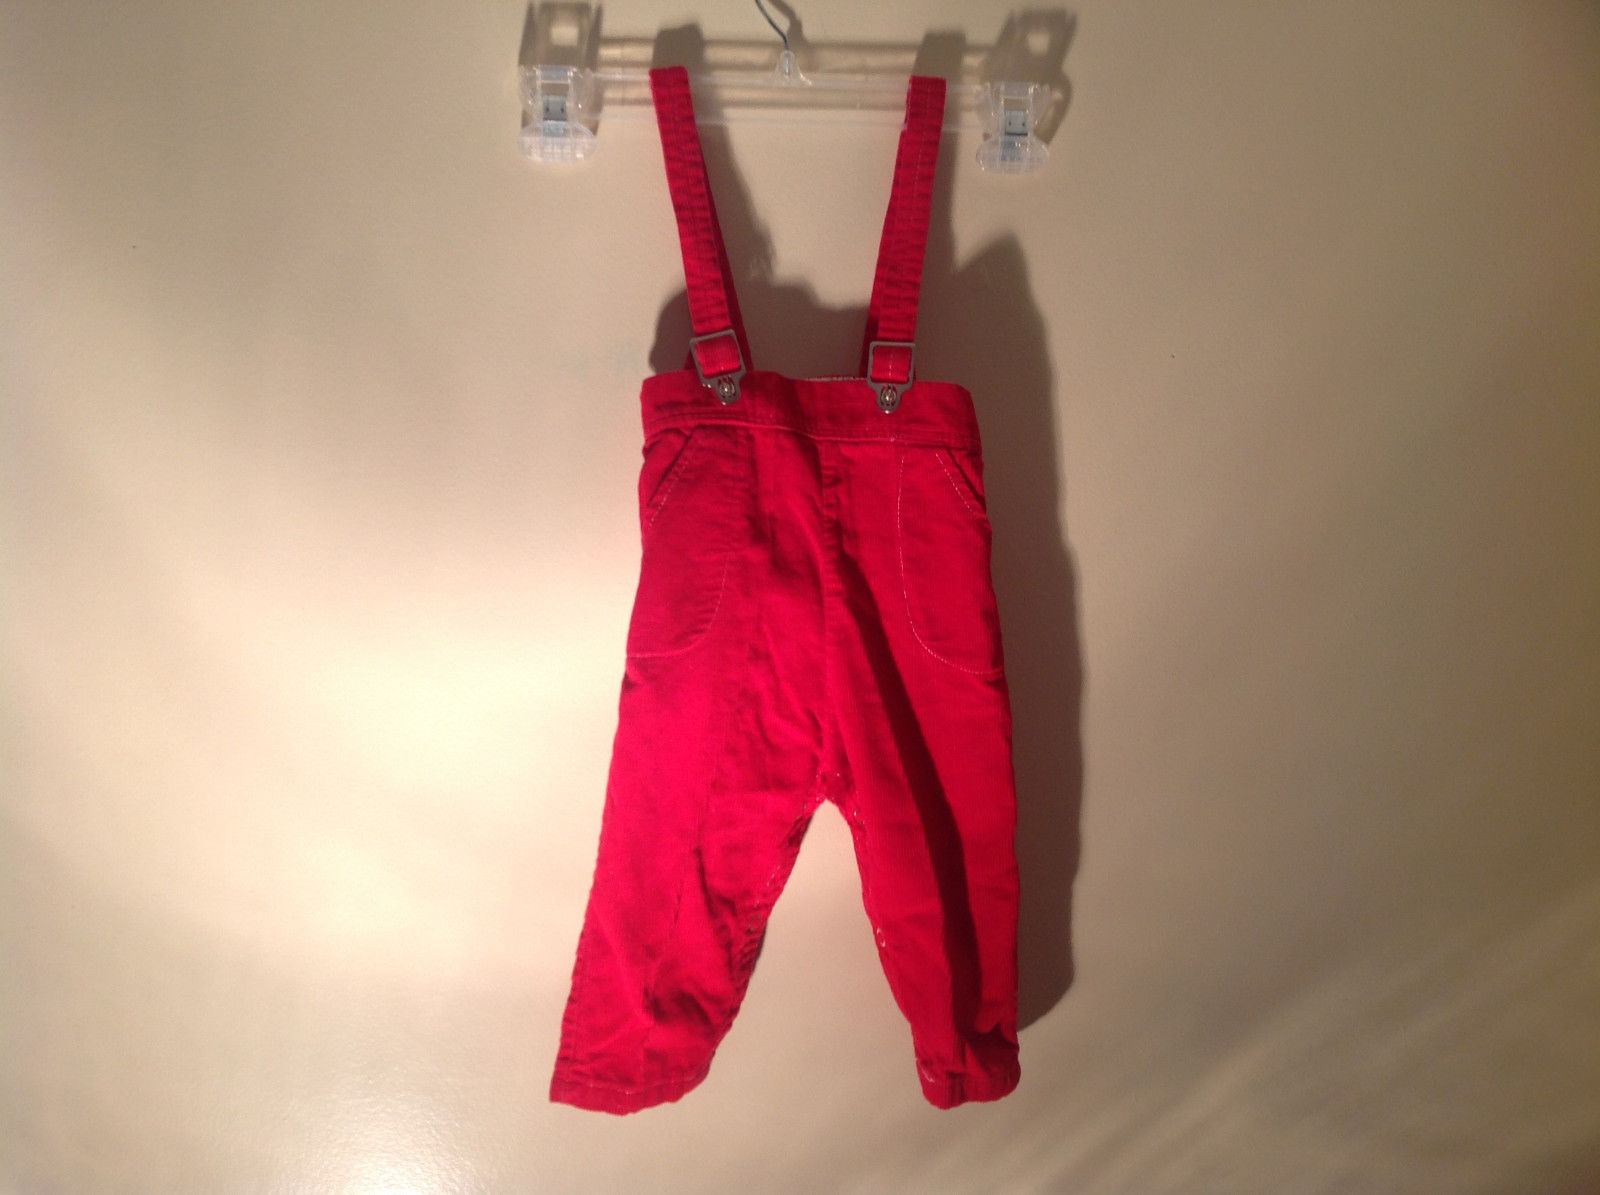 Toddler Red Corduroy Strapped Pants Suspenders NO TAG Measurements Below